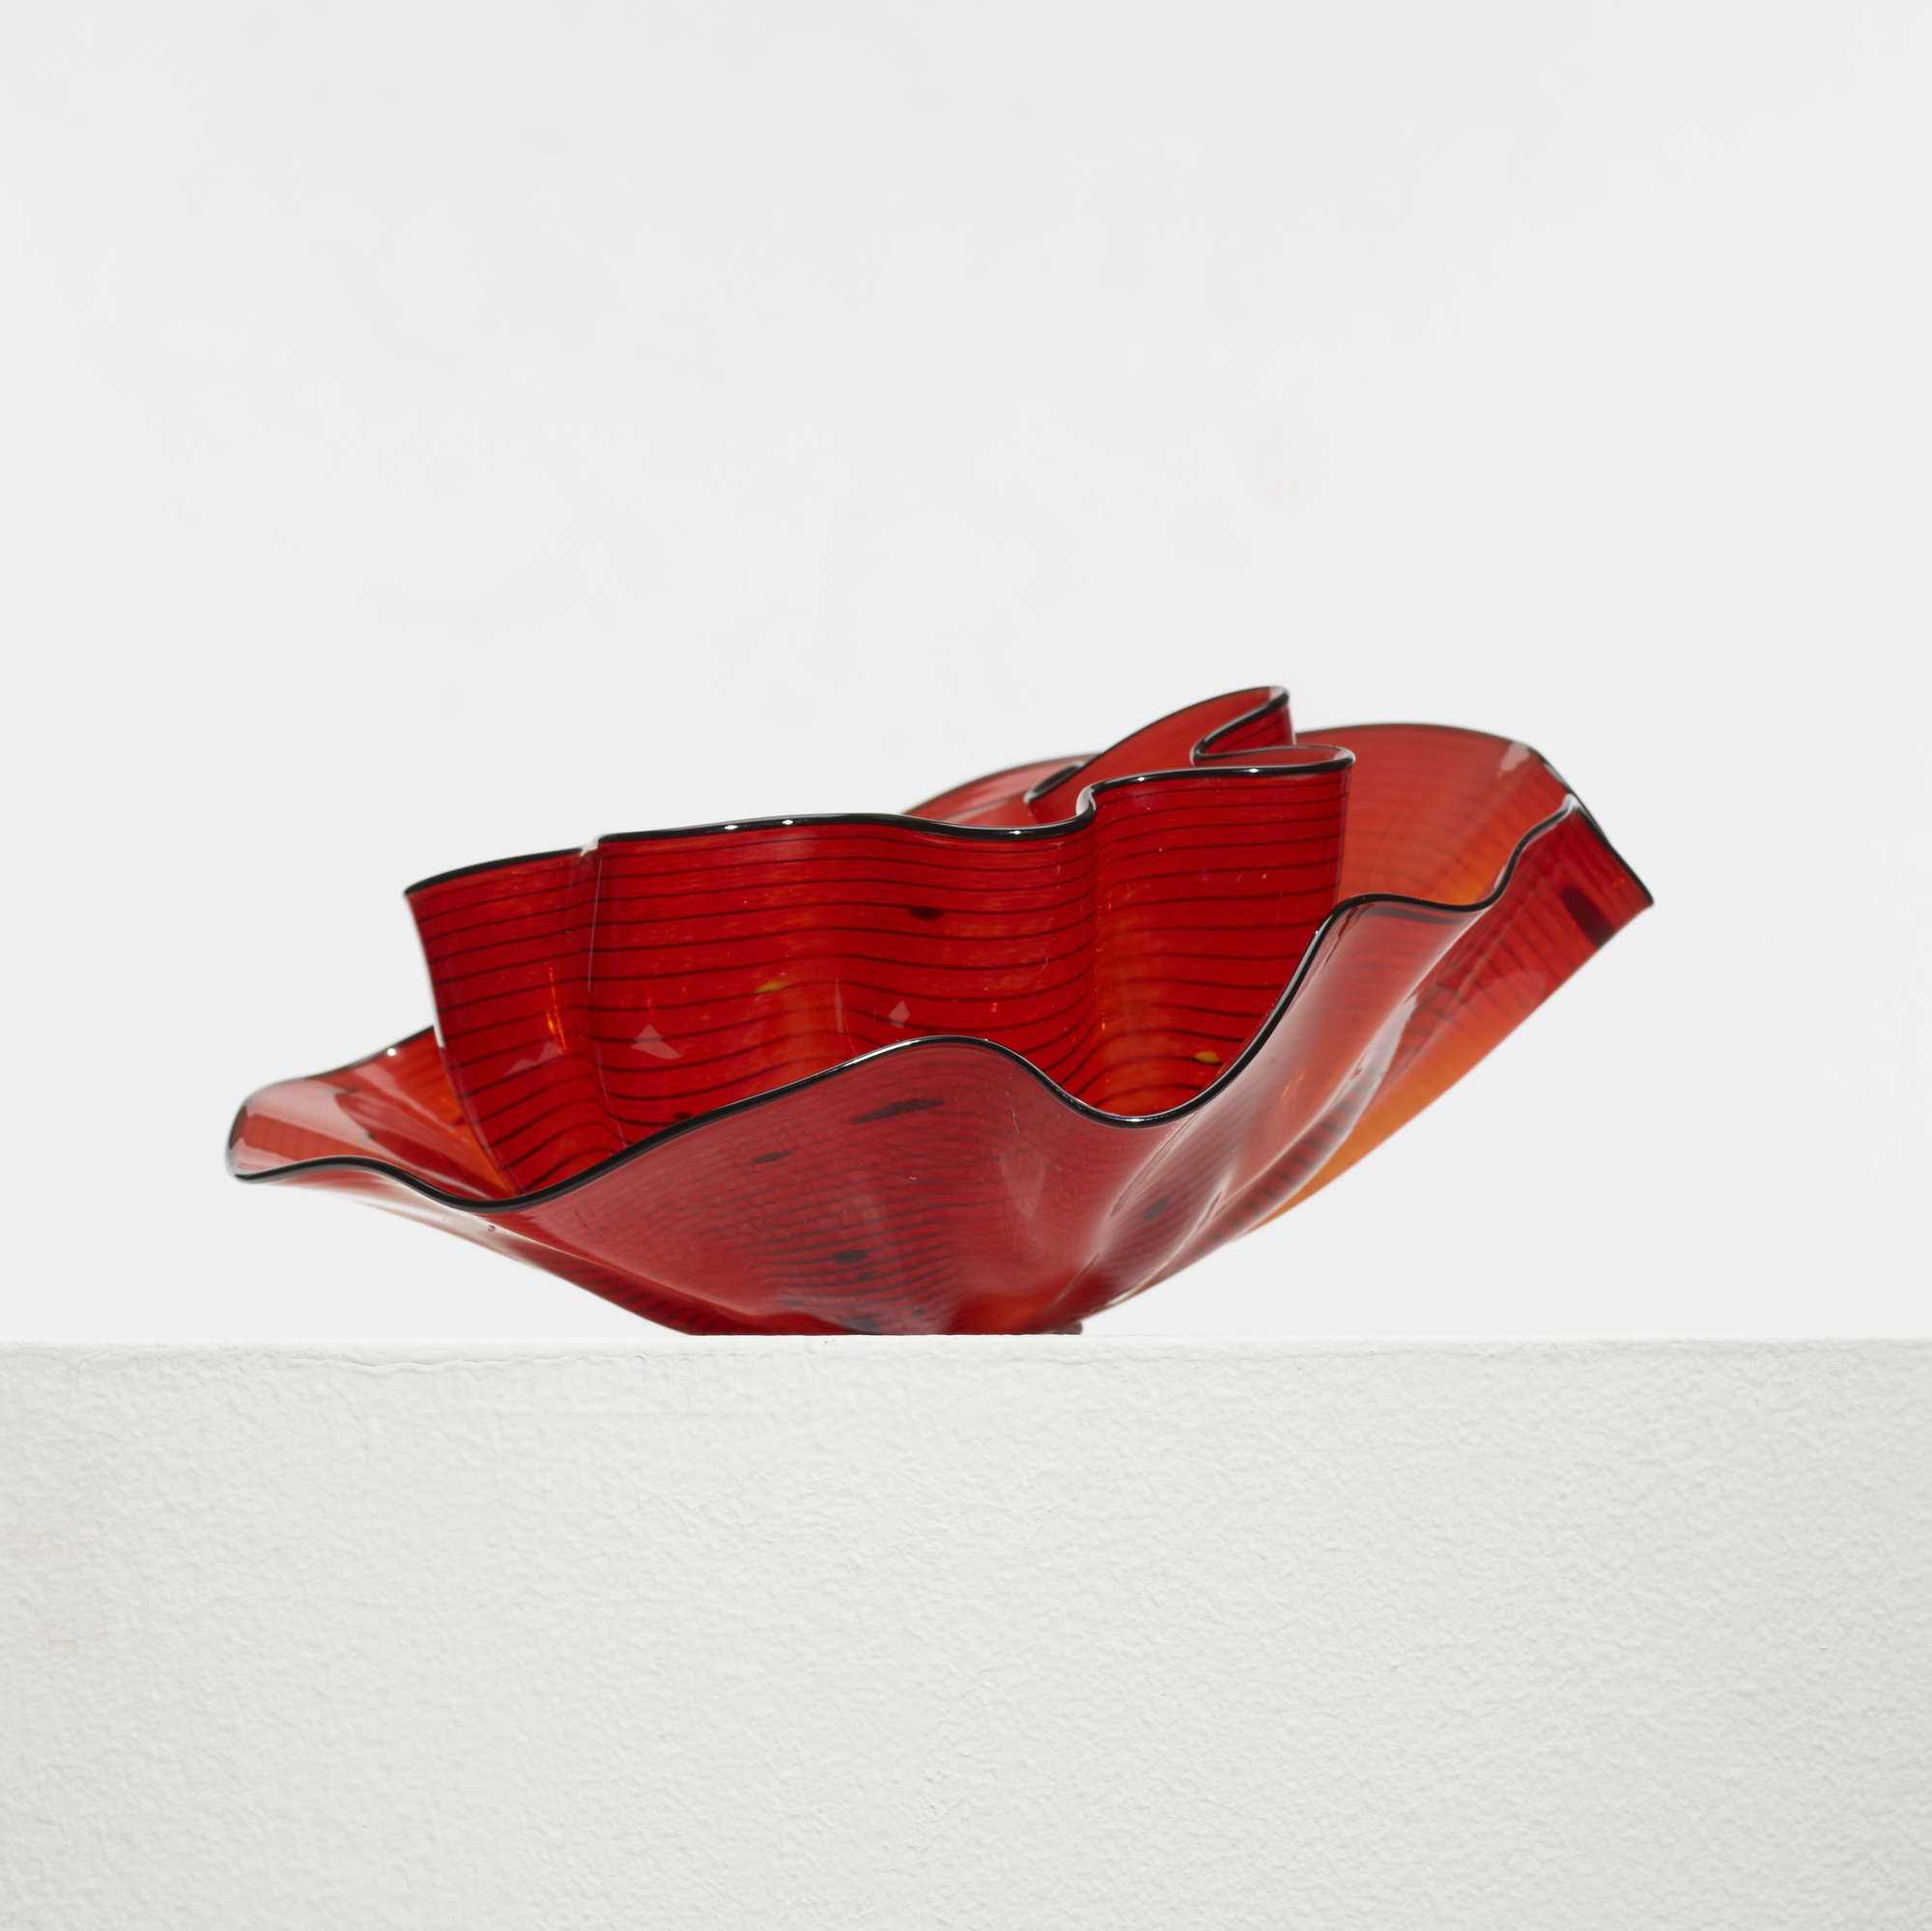 256: Dale Chihuly / Roman Red Seaform Set (2 of 4)